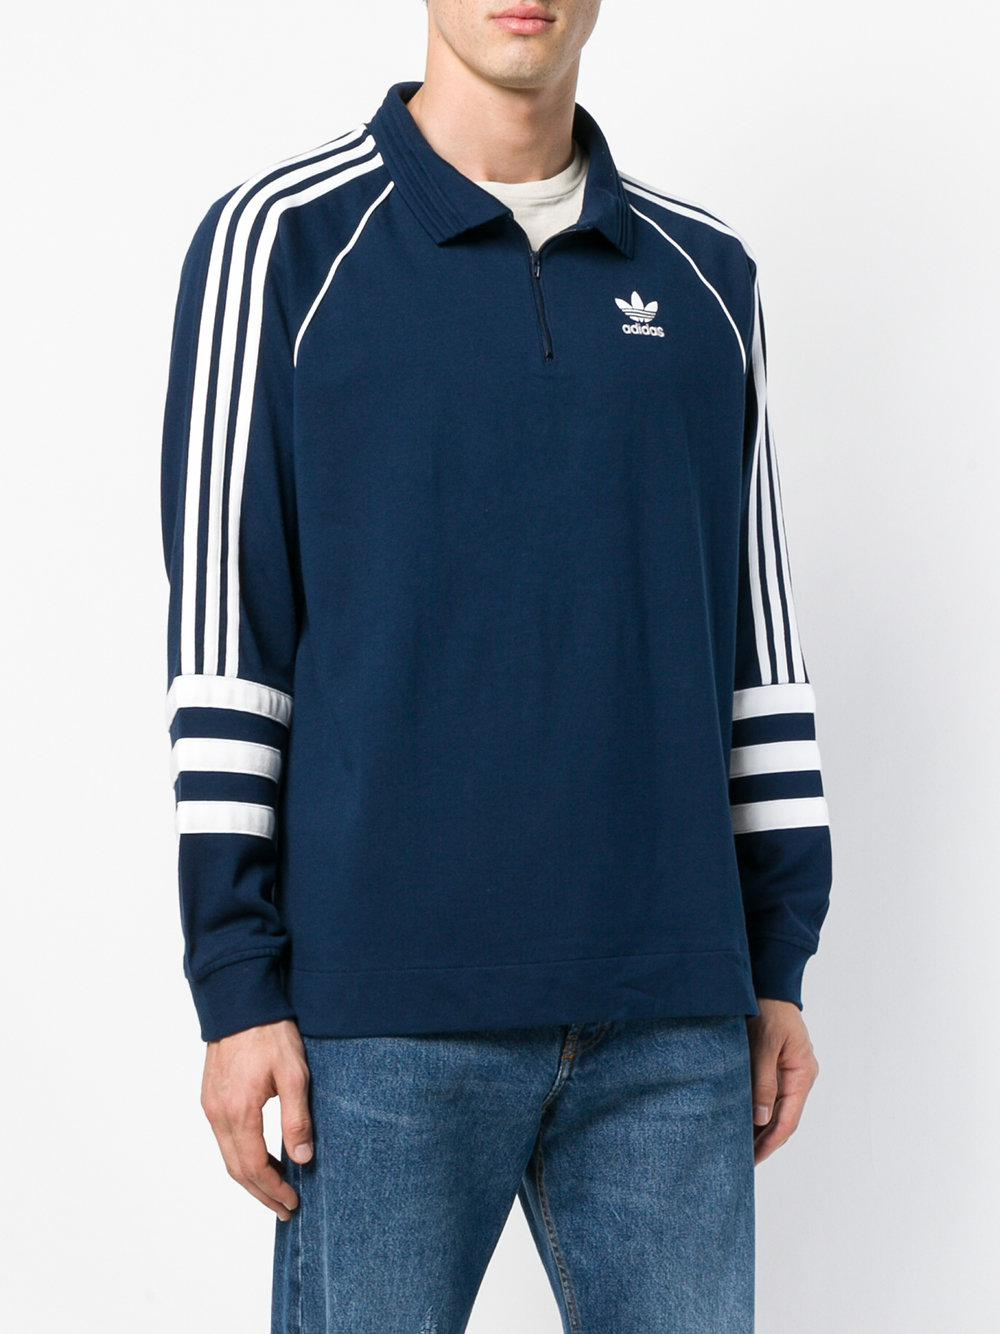 adidas Cotton Authentic Rugby Top in Blue for Men